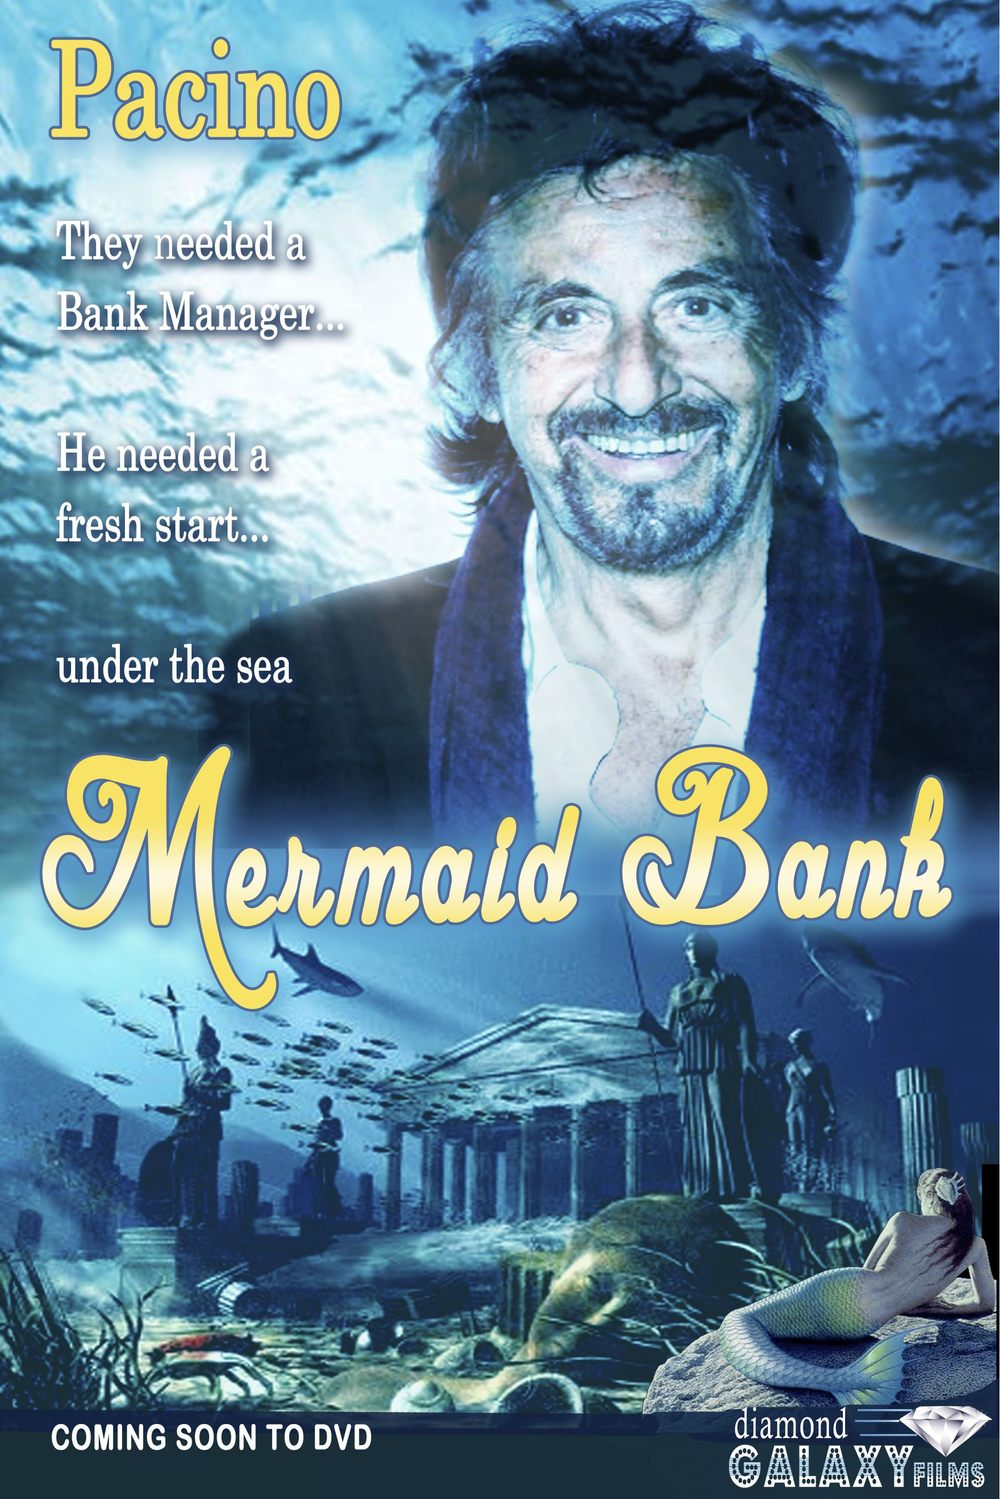 Mermaid Bank copy.jpg